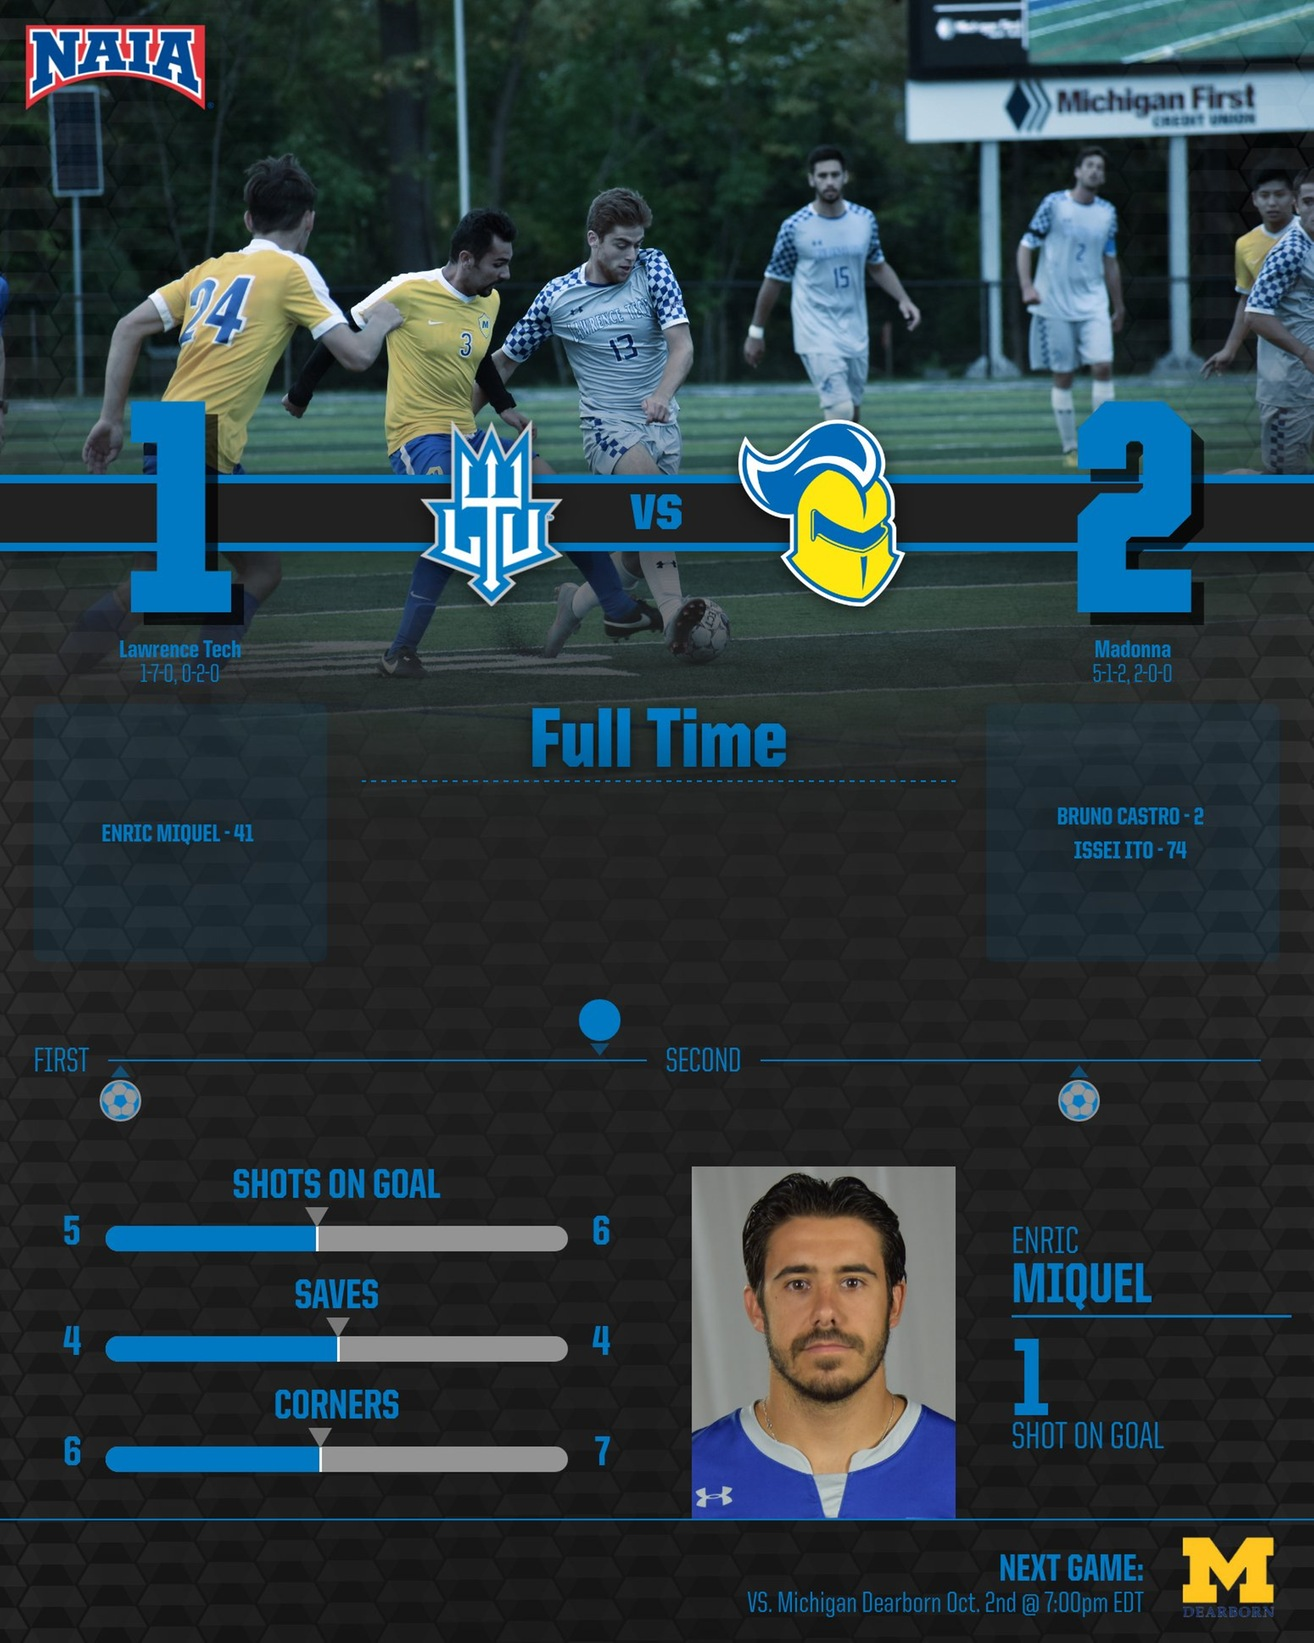 Enric Miquel Scores First Goal of the Season, but That is Not Enough as Blue Devils Drop Conference Opener at Madonna (Mich.) University.